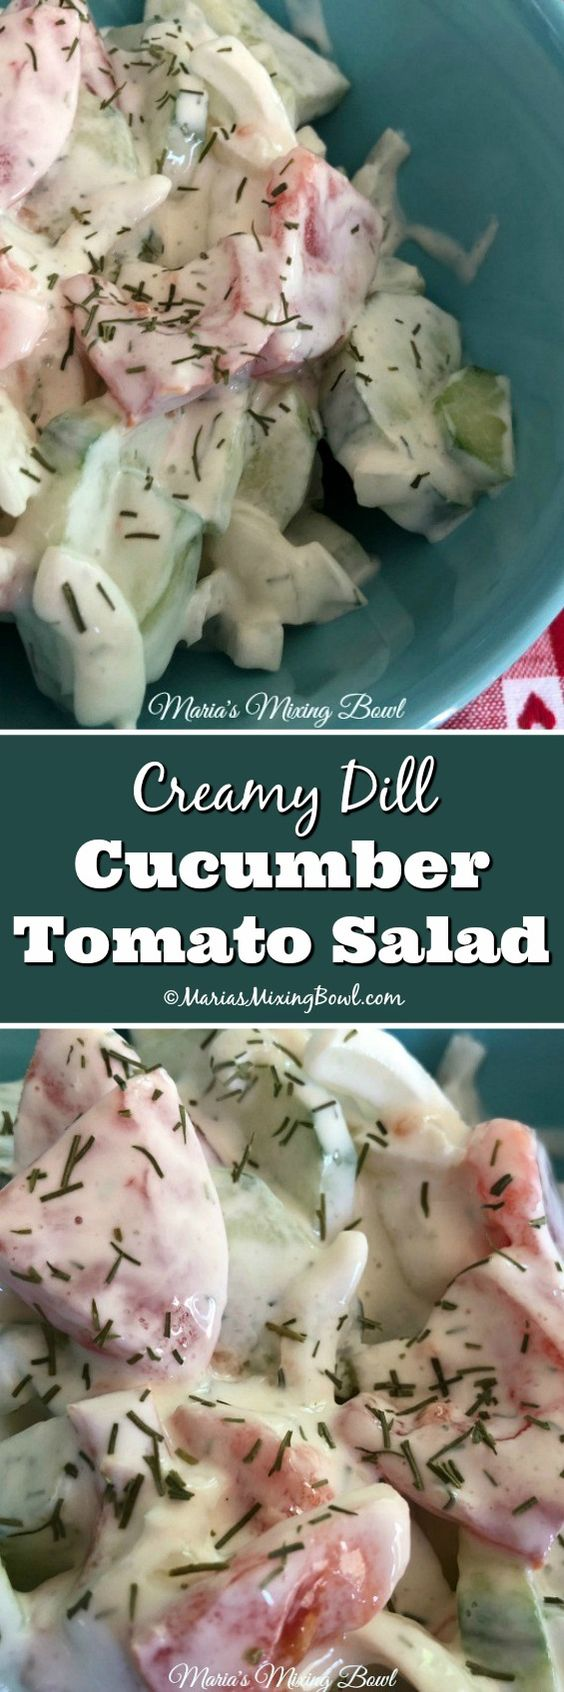 Creamy Dill Cucumber Tomato Salad -This creamy cucumber and tomato salad is so simple to make and is one of our go to summer salads. The perfect side dish with all your grilled burgers, meats and fish!